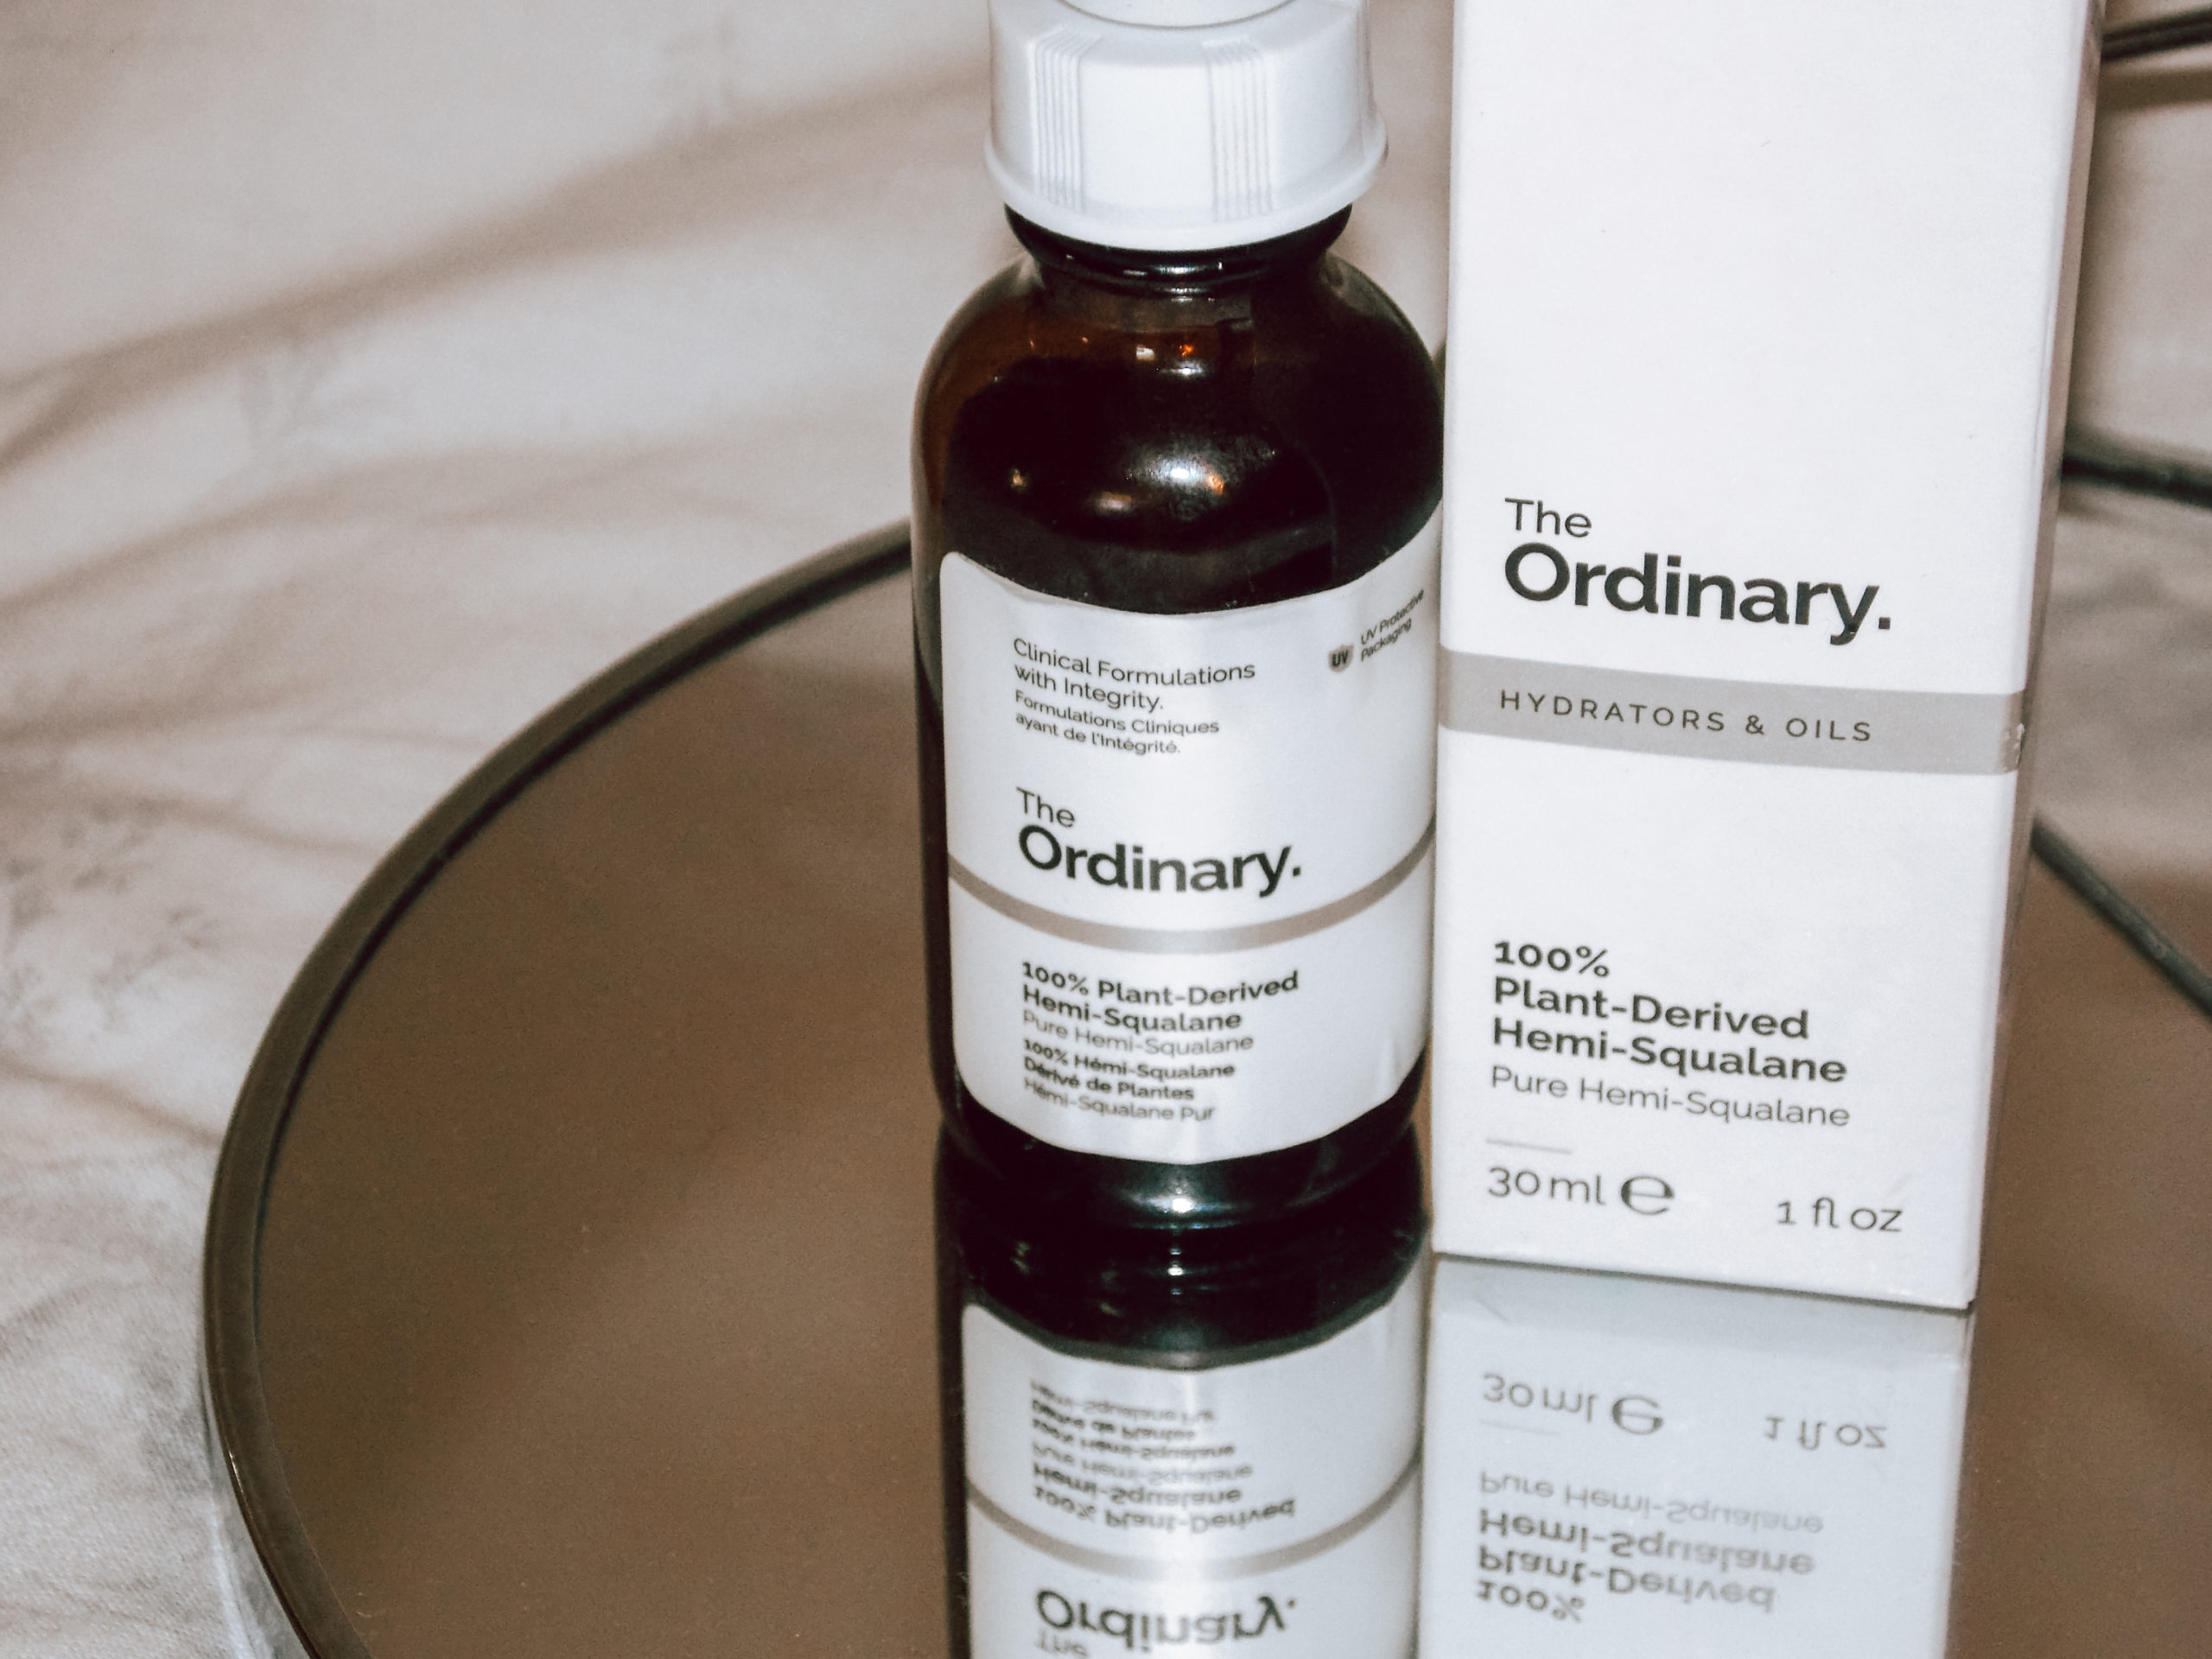 the ordinary 100% plant-derived hemi-squalane review recenzija livinglikev fashion blogger